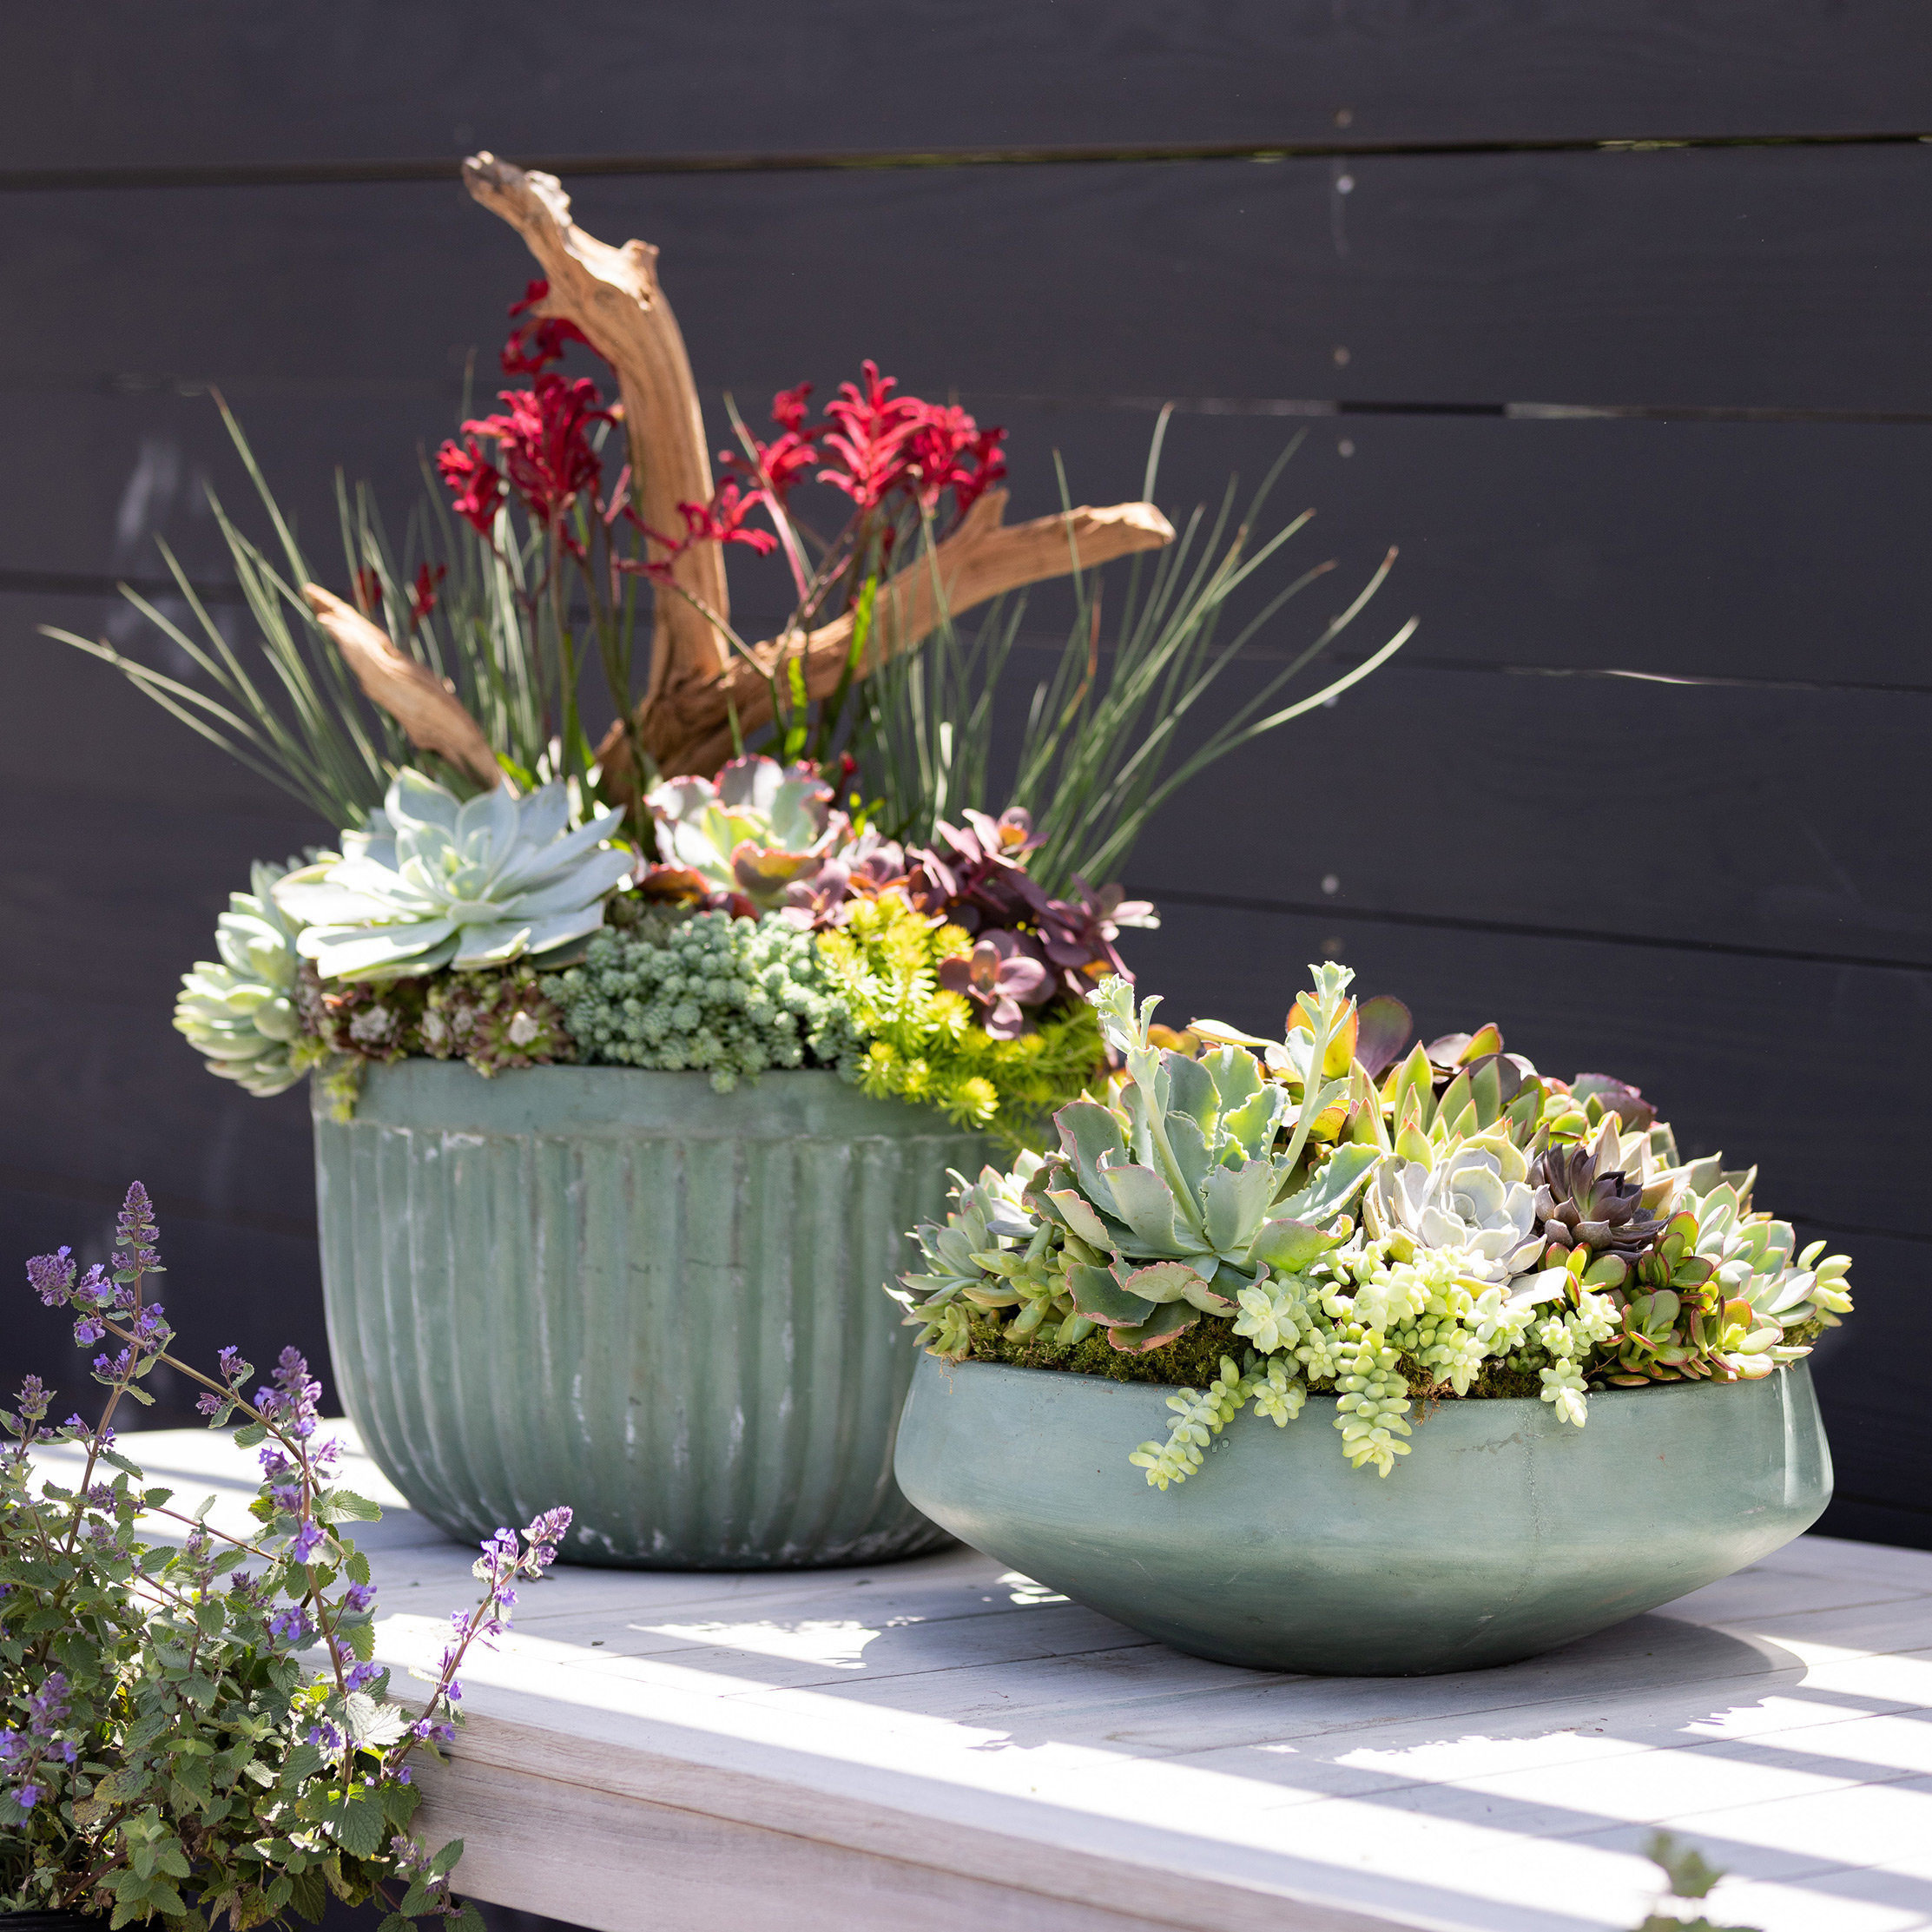 Design by Terrain: Vacation Hardy Planters for Summer